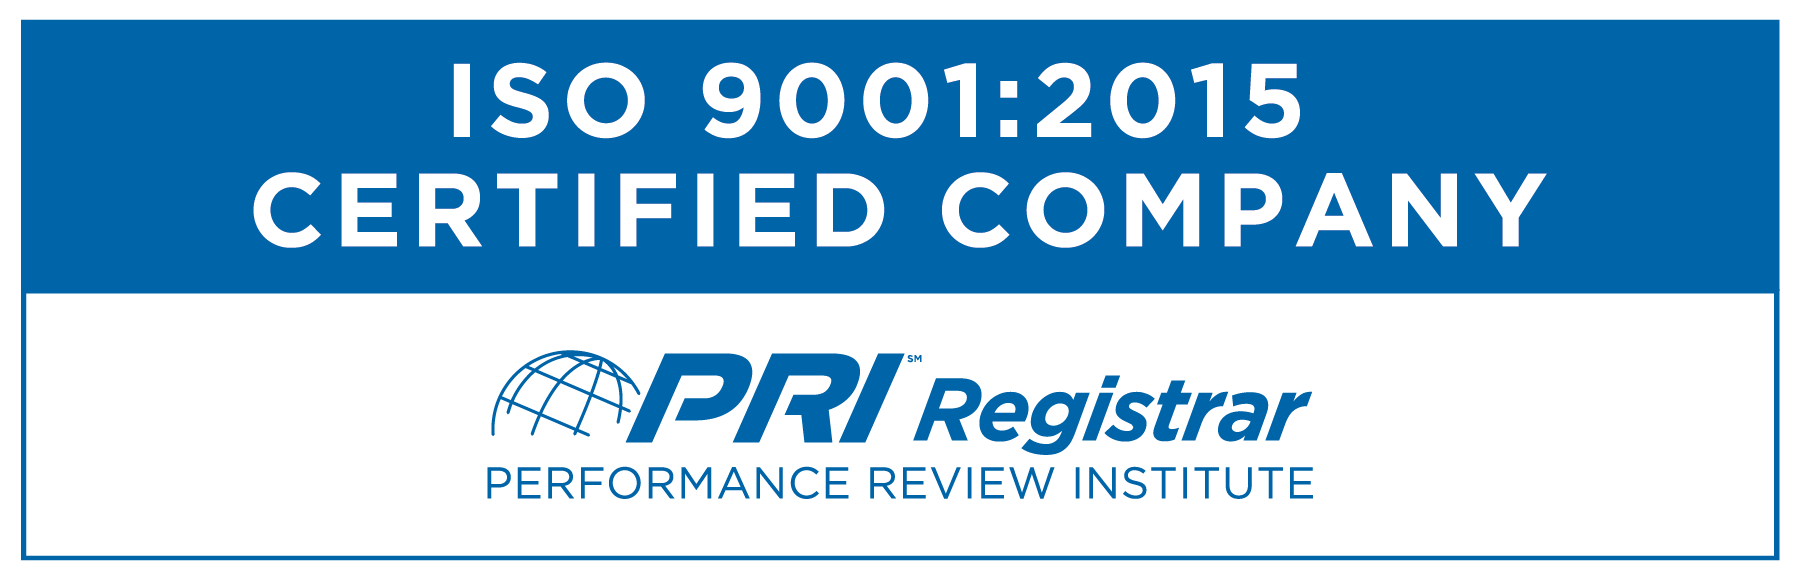 ISO 9001:2015 Certified Company